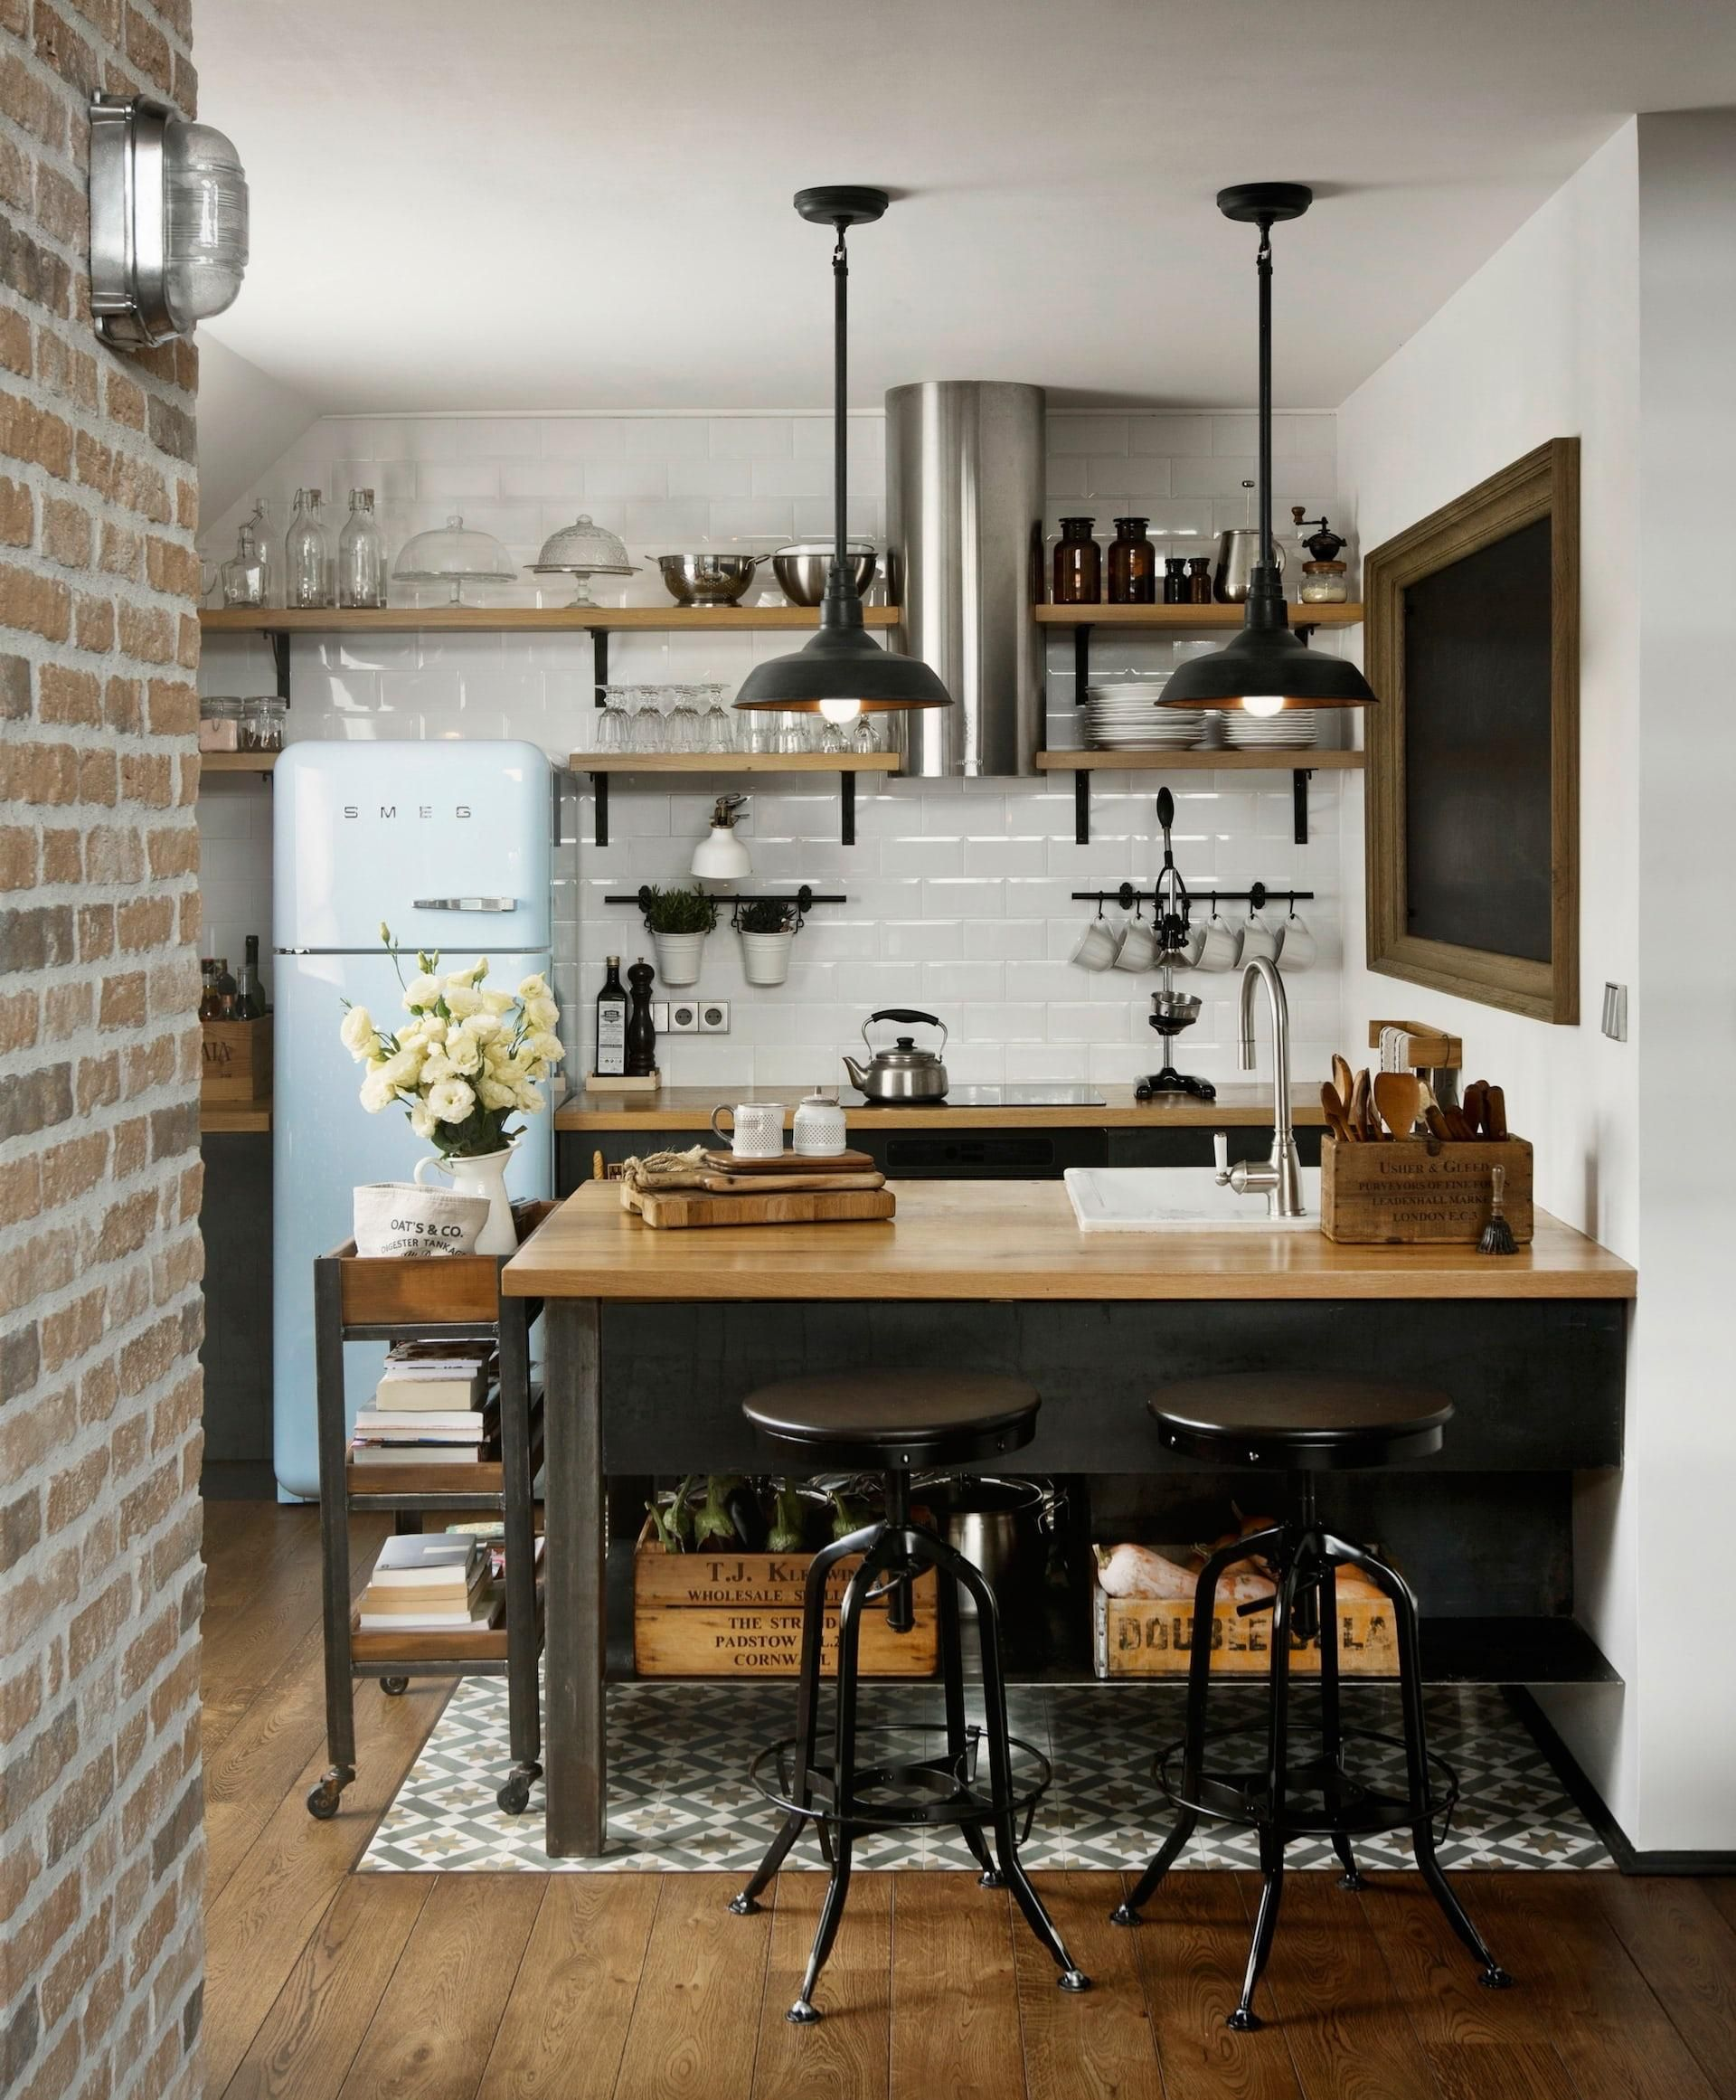 Cozy Industrial Kitchen In A Reconstructed Loft In Sofia Bulgaria